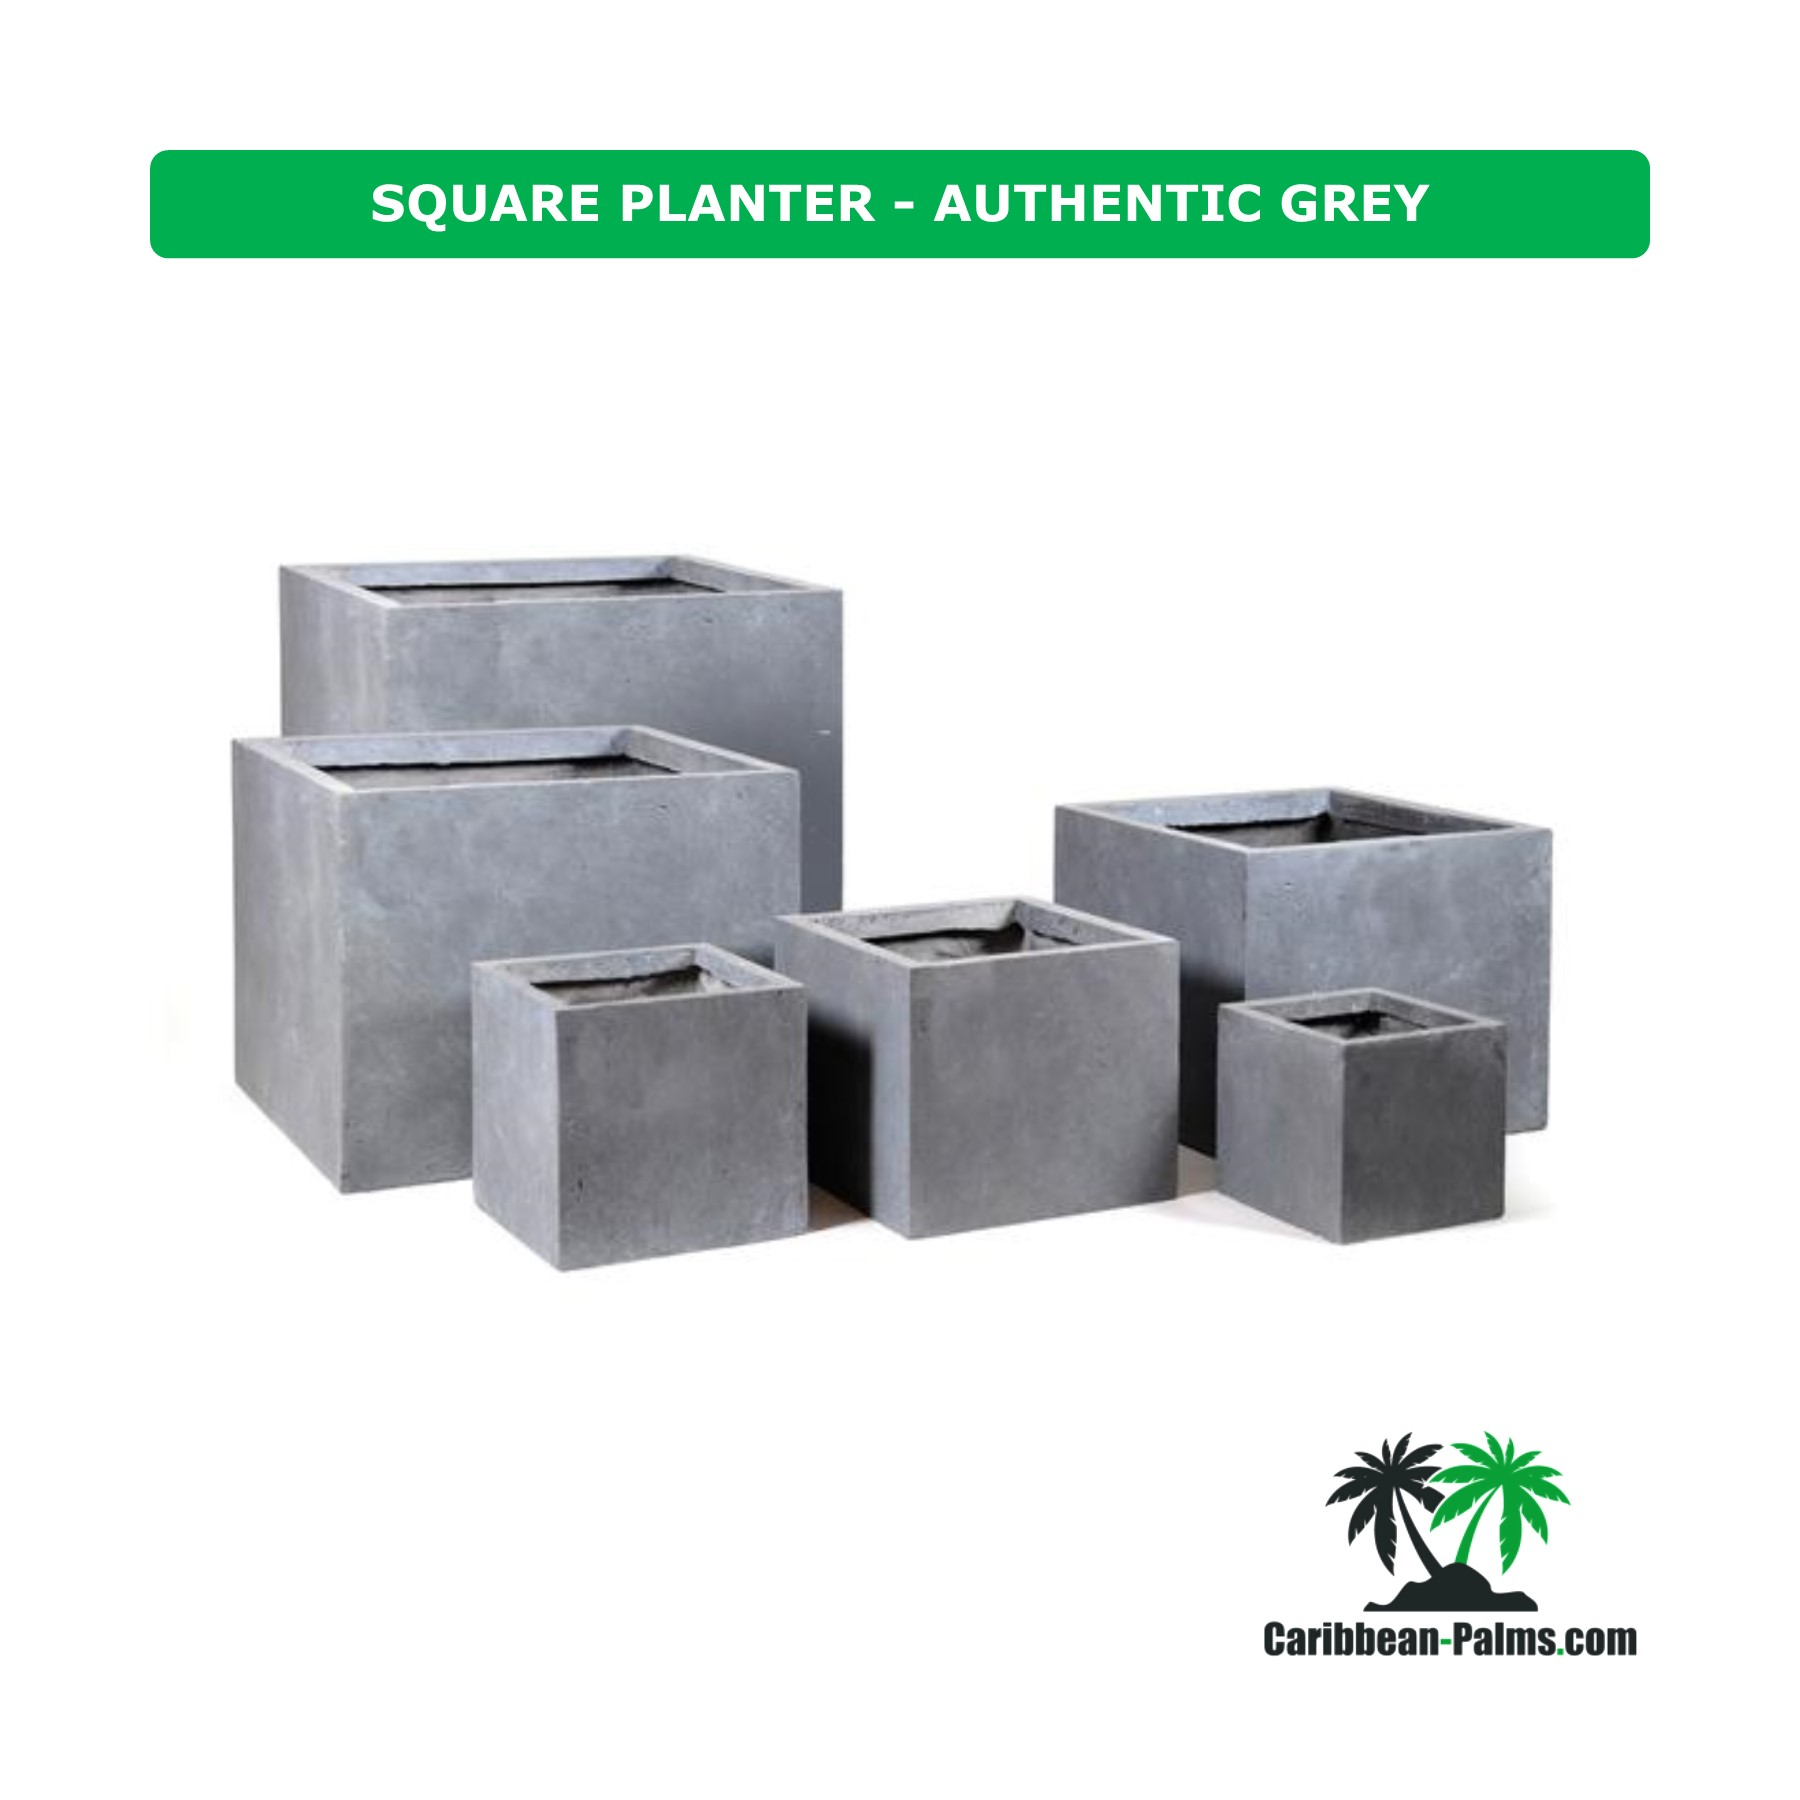 SQUARE PLANTER AUTHENTIC GREY